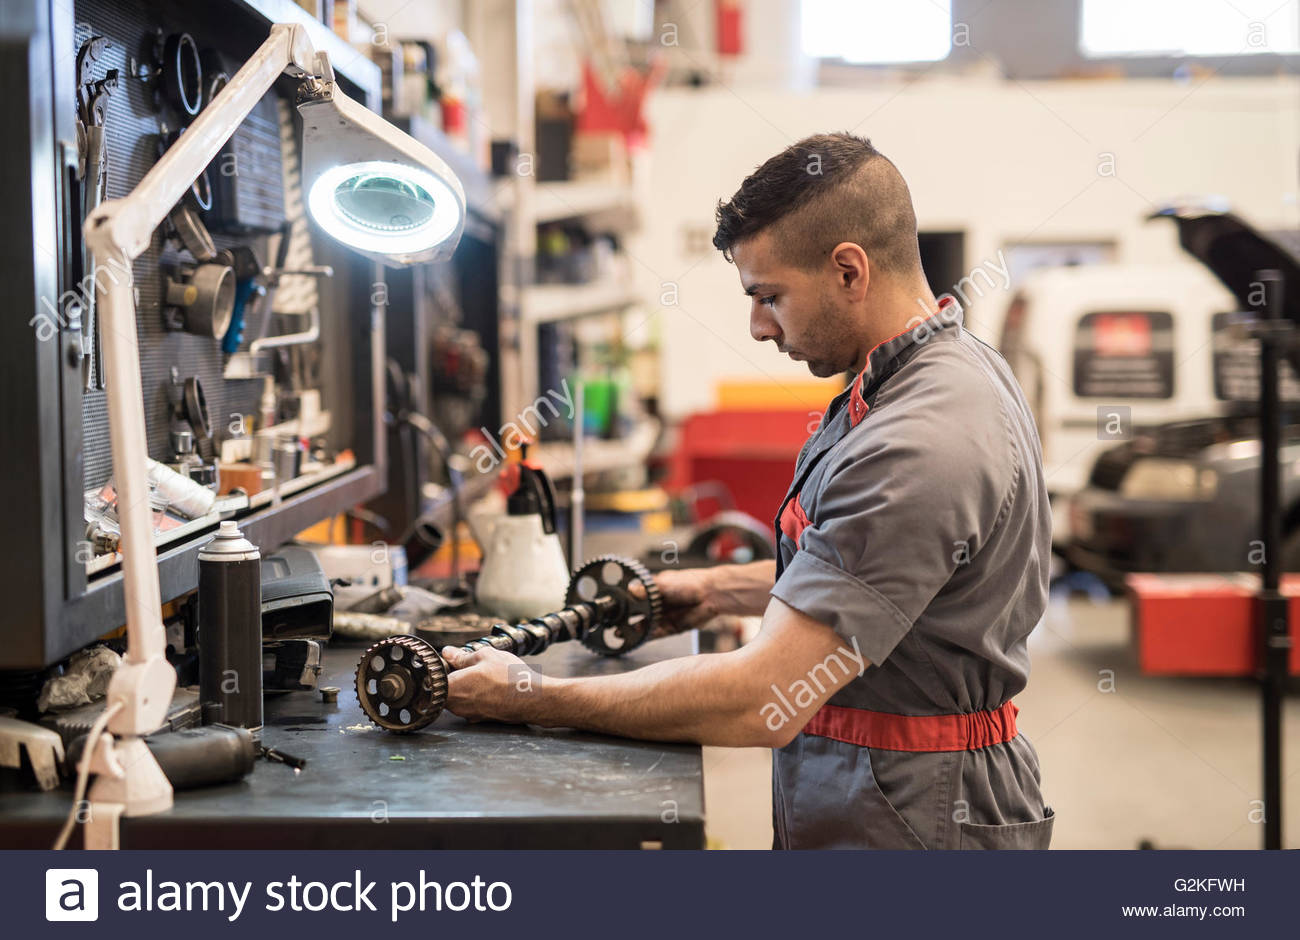 Mechanic man working in tools, table with magnify lens - Stock Image